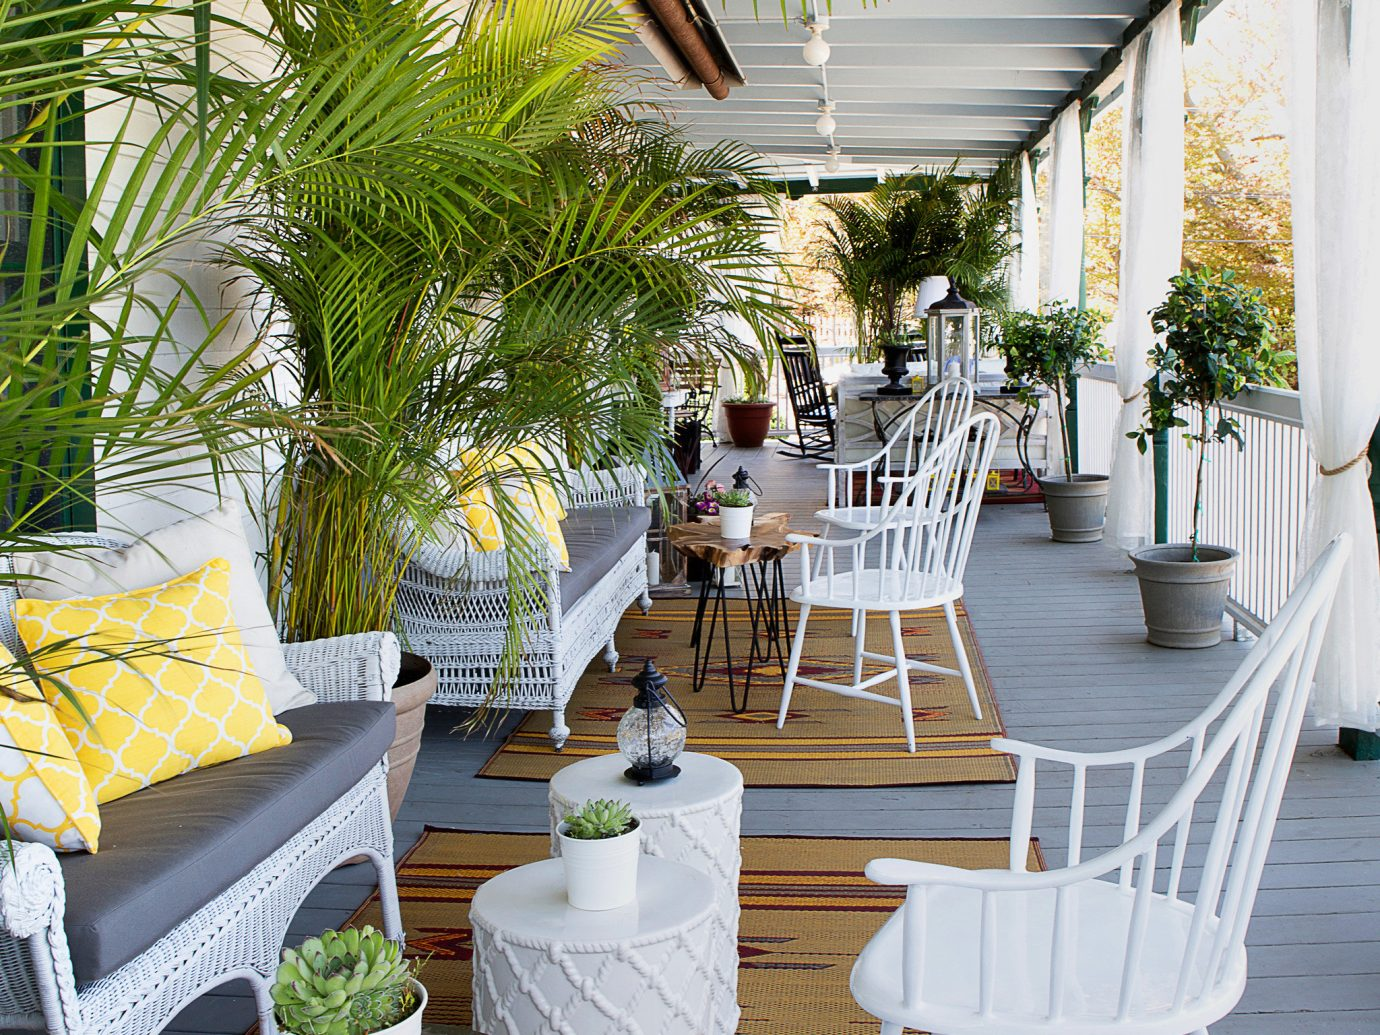 Outdoor space at The Chequit, Shelter Island, NY